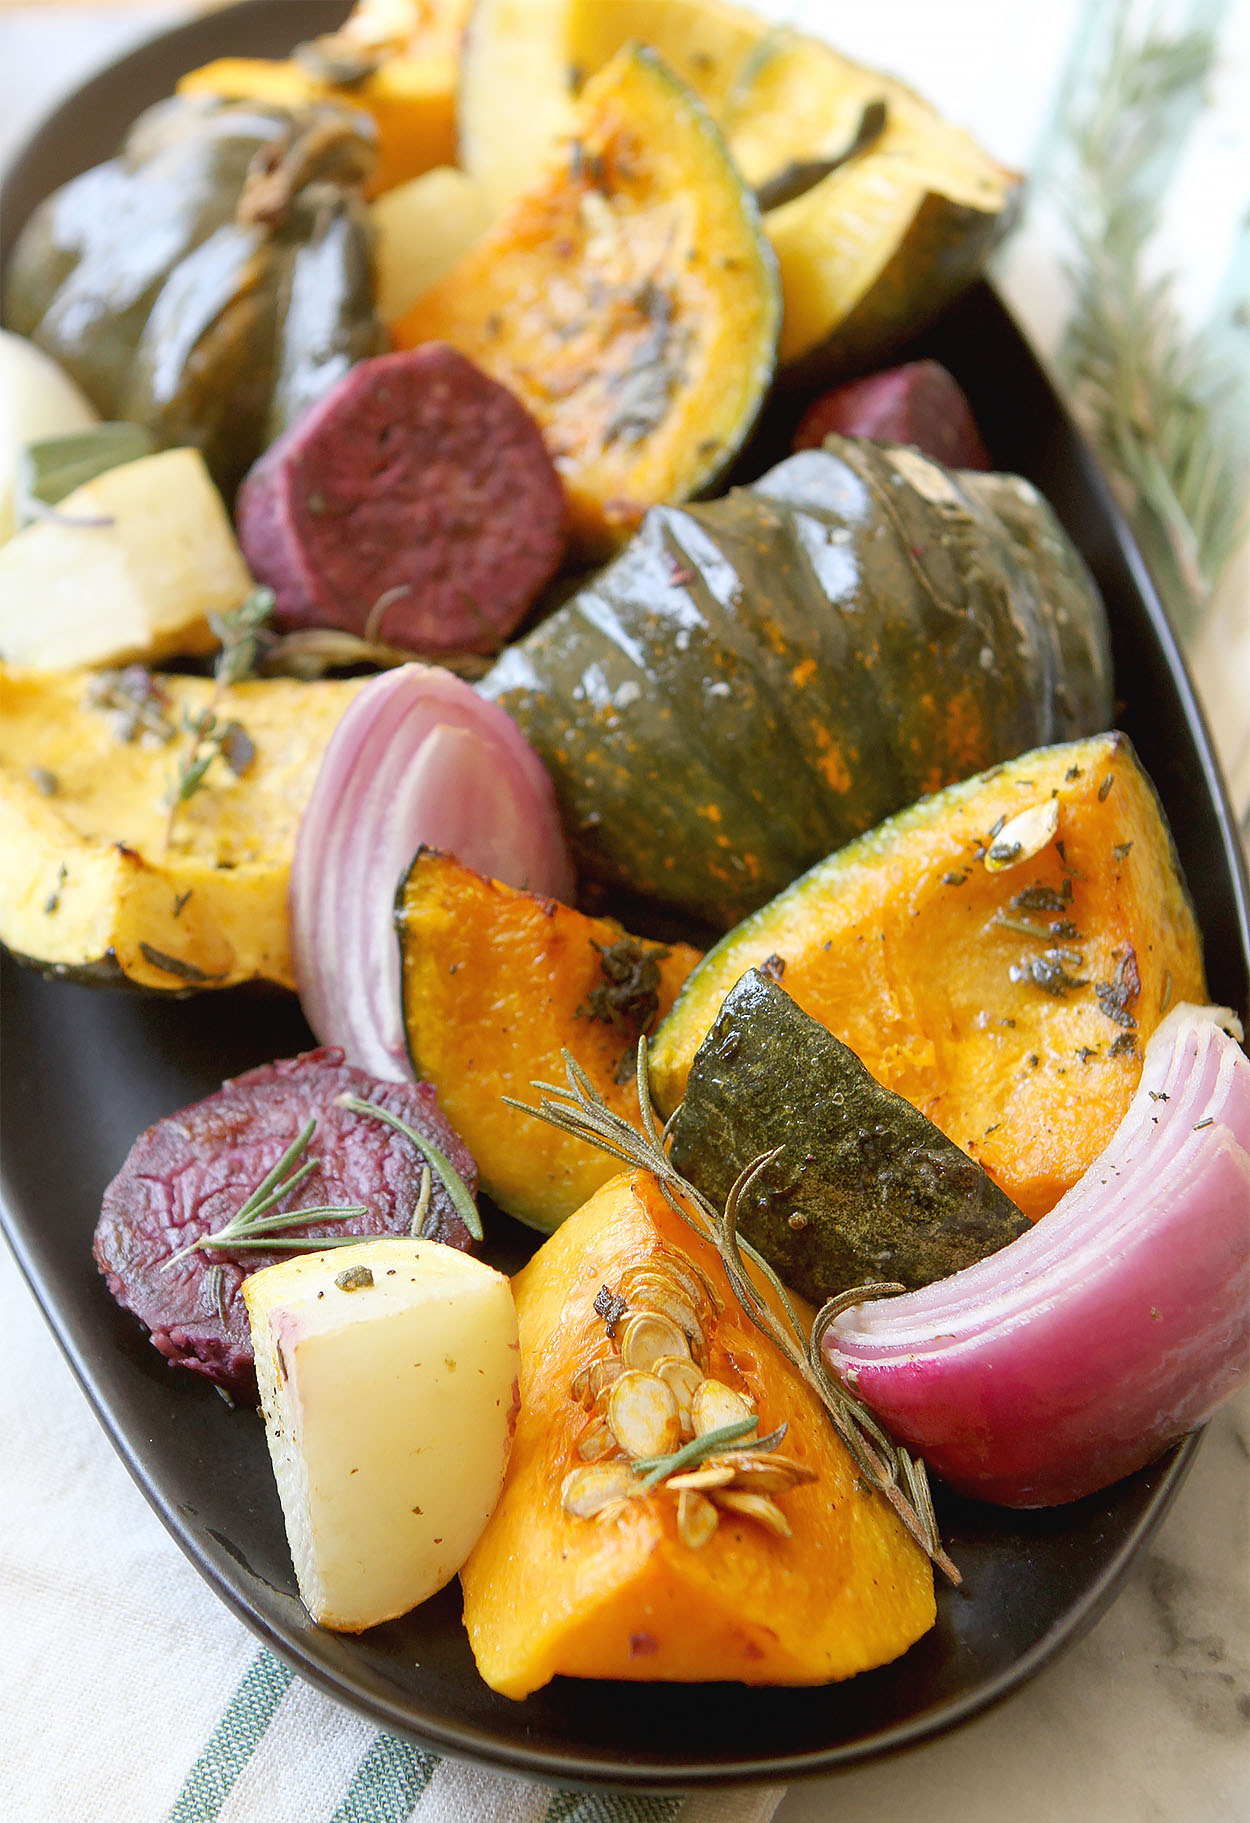 a oblong black plate full of beets, squash, red onions, and sprinkled with rosemary and thyme